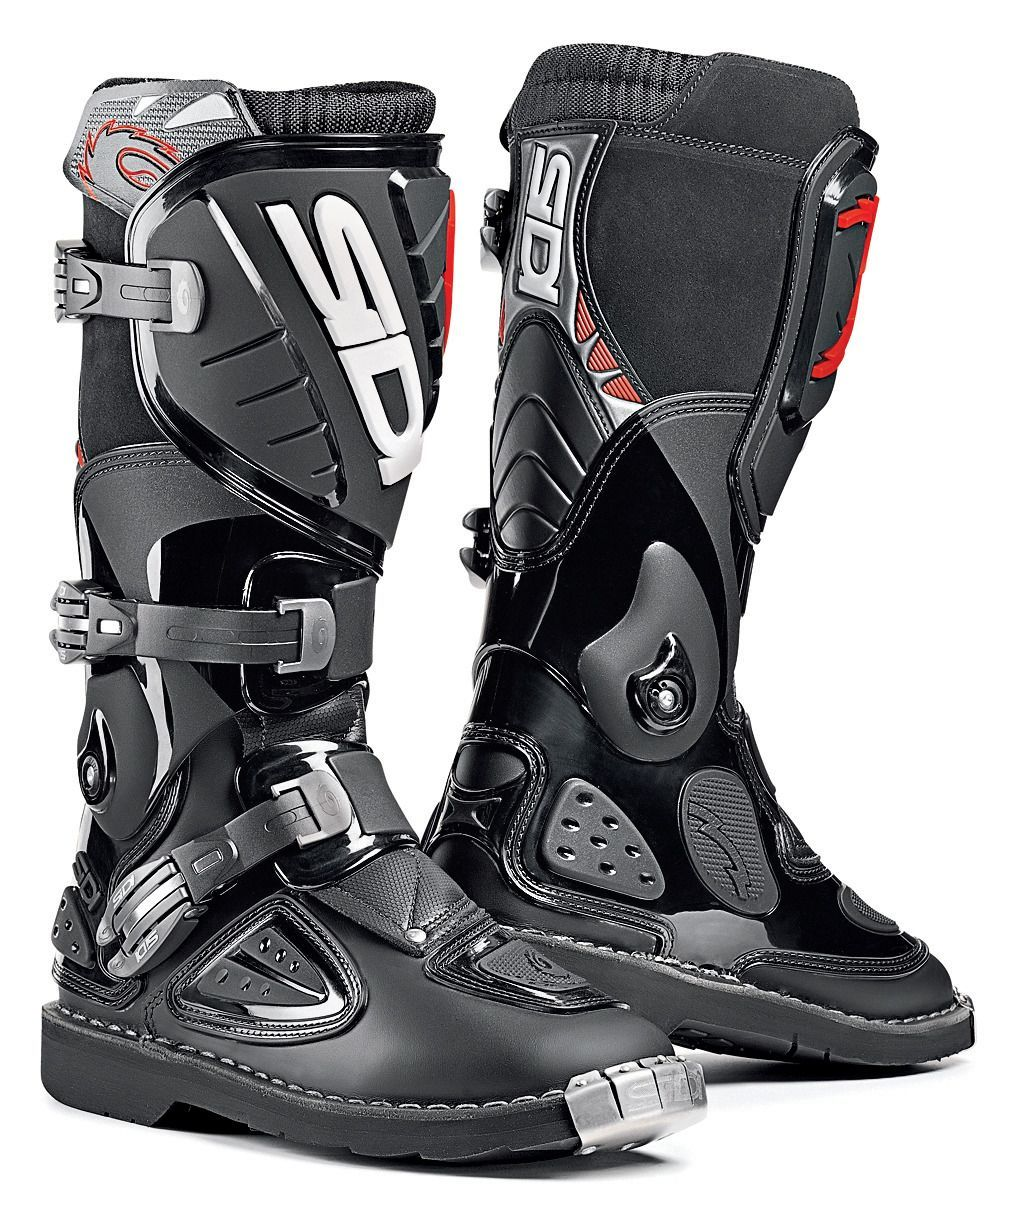 Youth Dirt Bike Boots >> Sidi Stinger Boots Youth Chase Boots Dirt Bike Boots Shoes